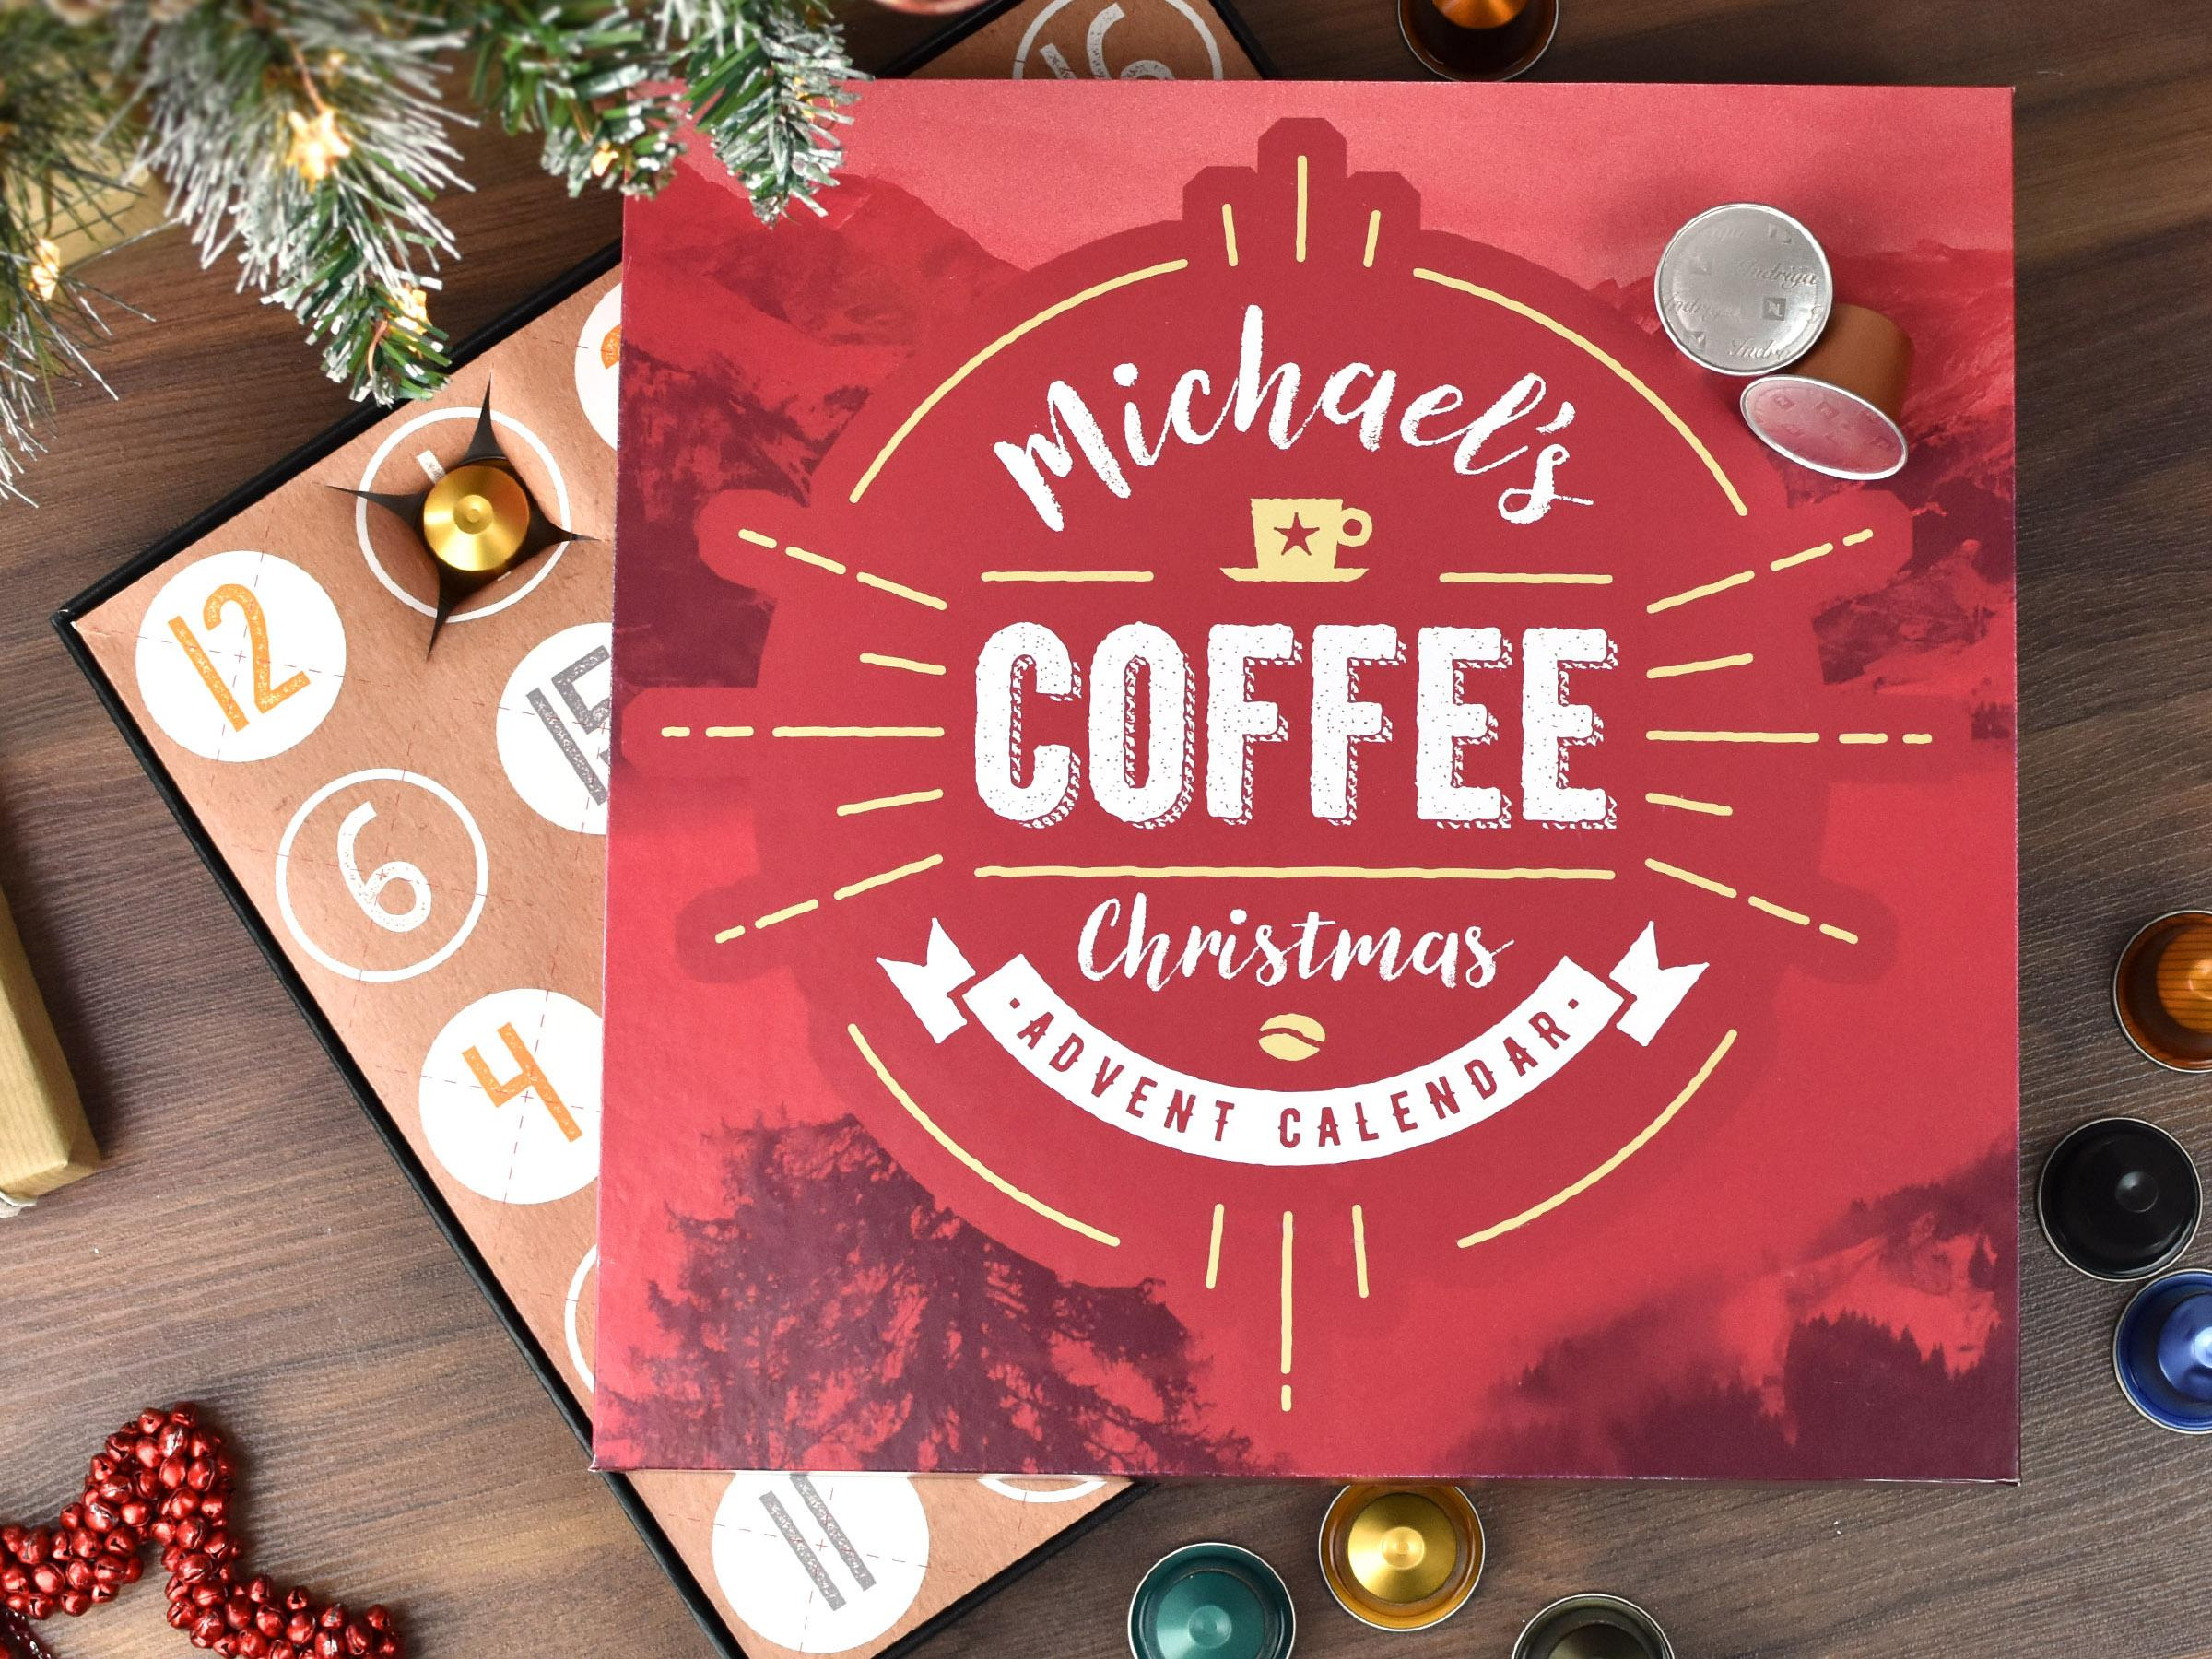 20 best food and drink advent calendars for Christmas 2018   The ...